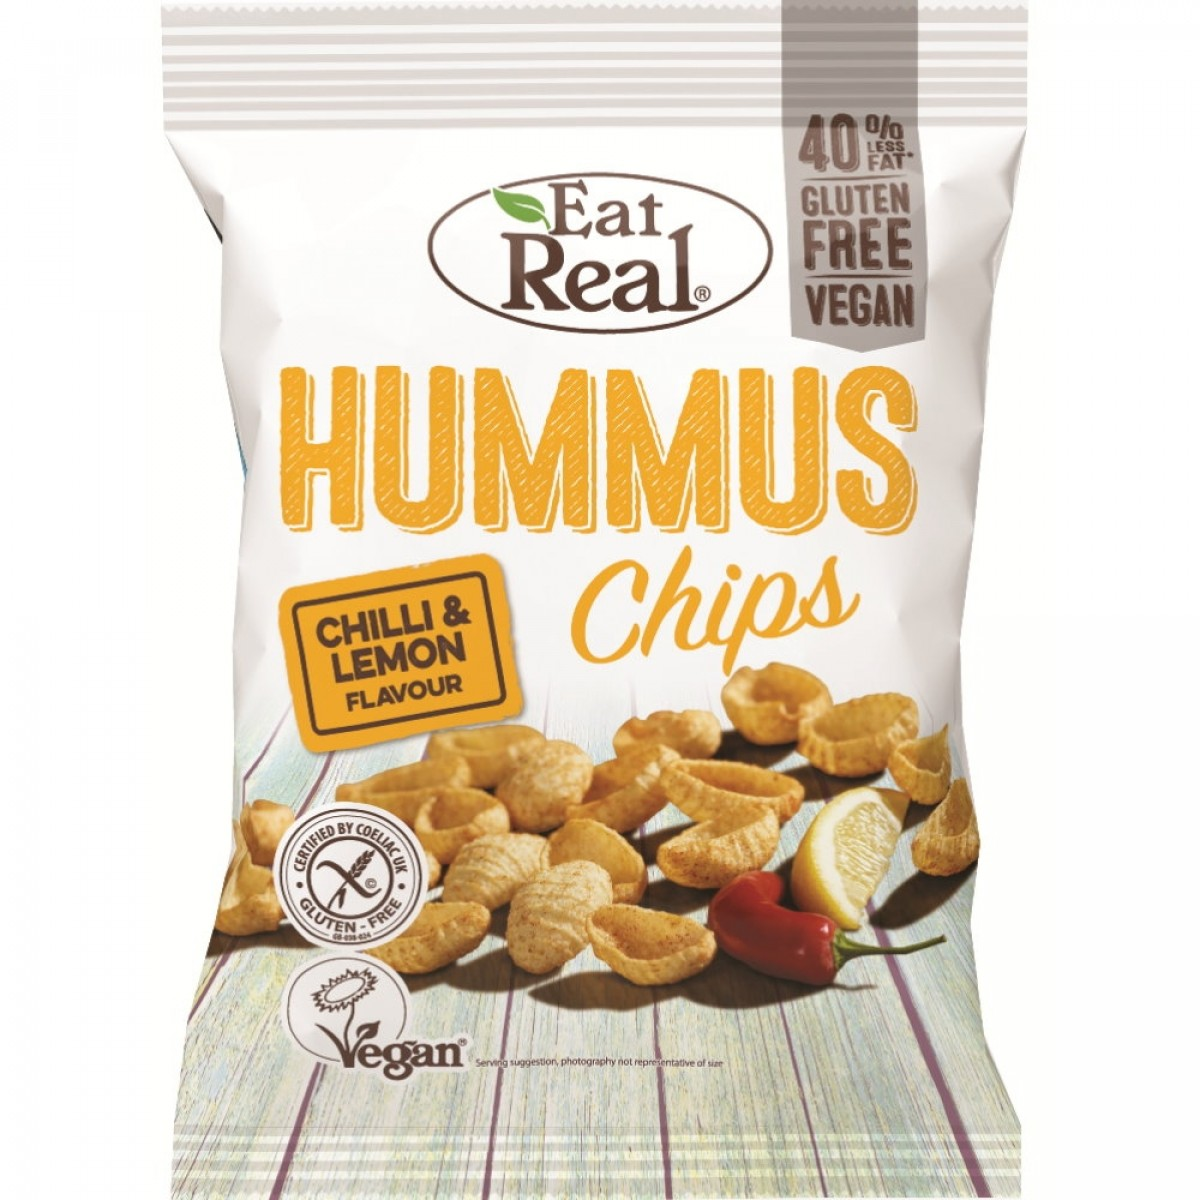 Hummus Chips Chilli & Lemon